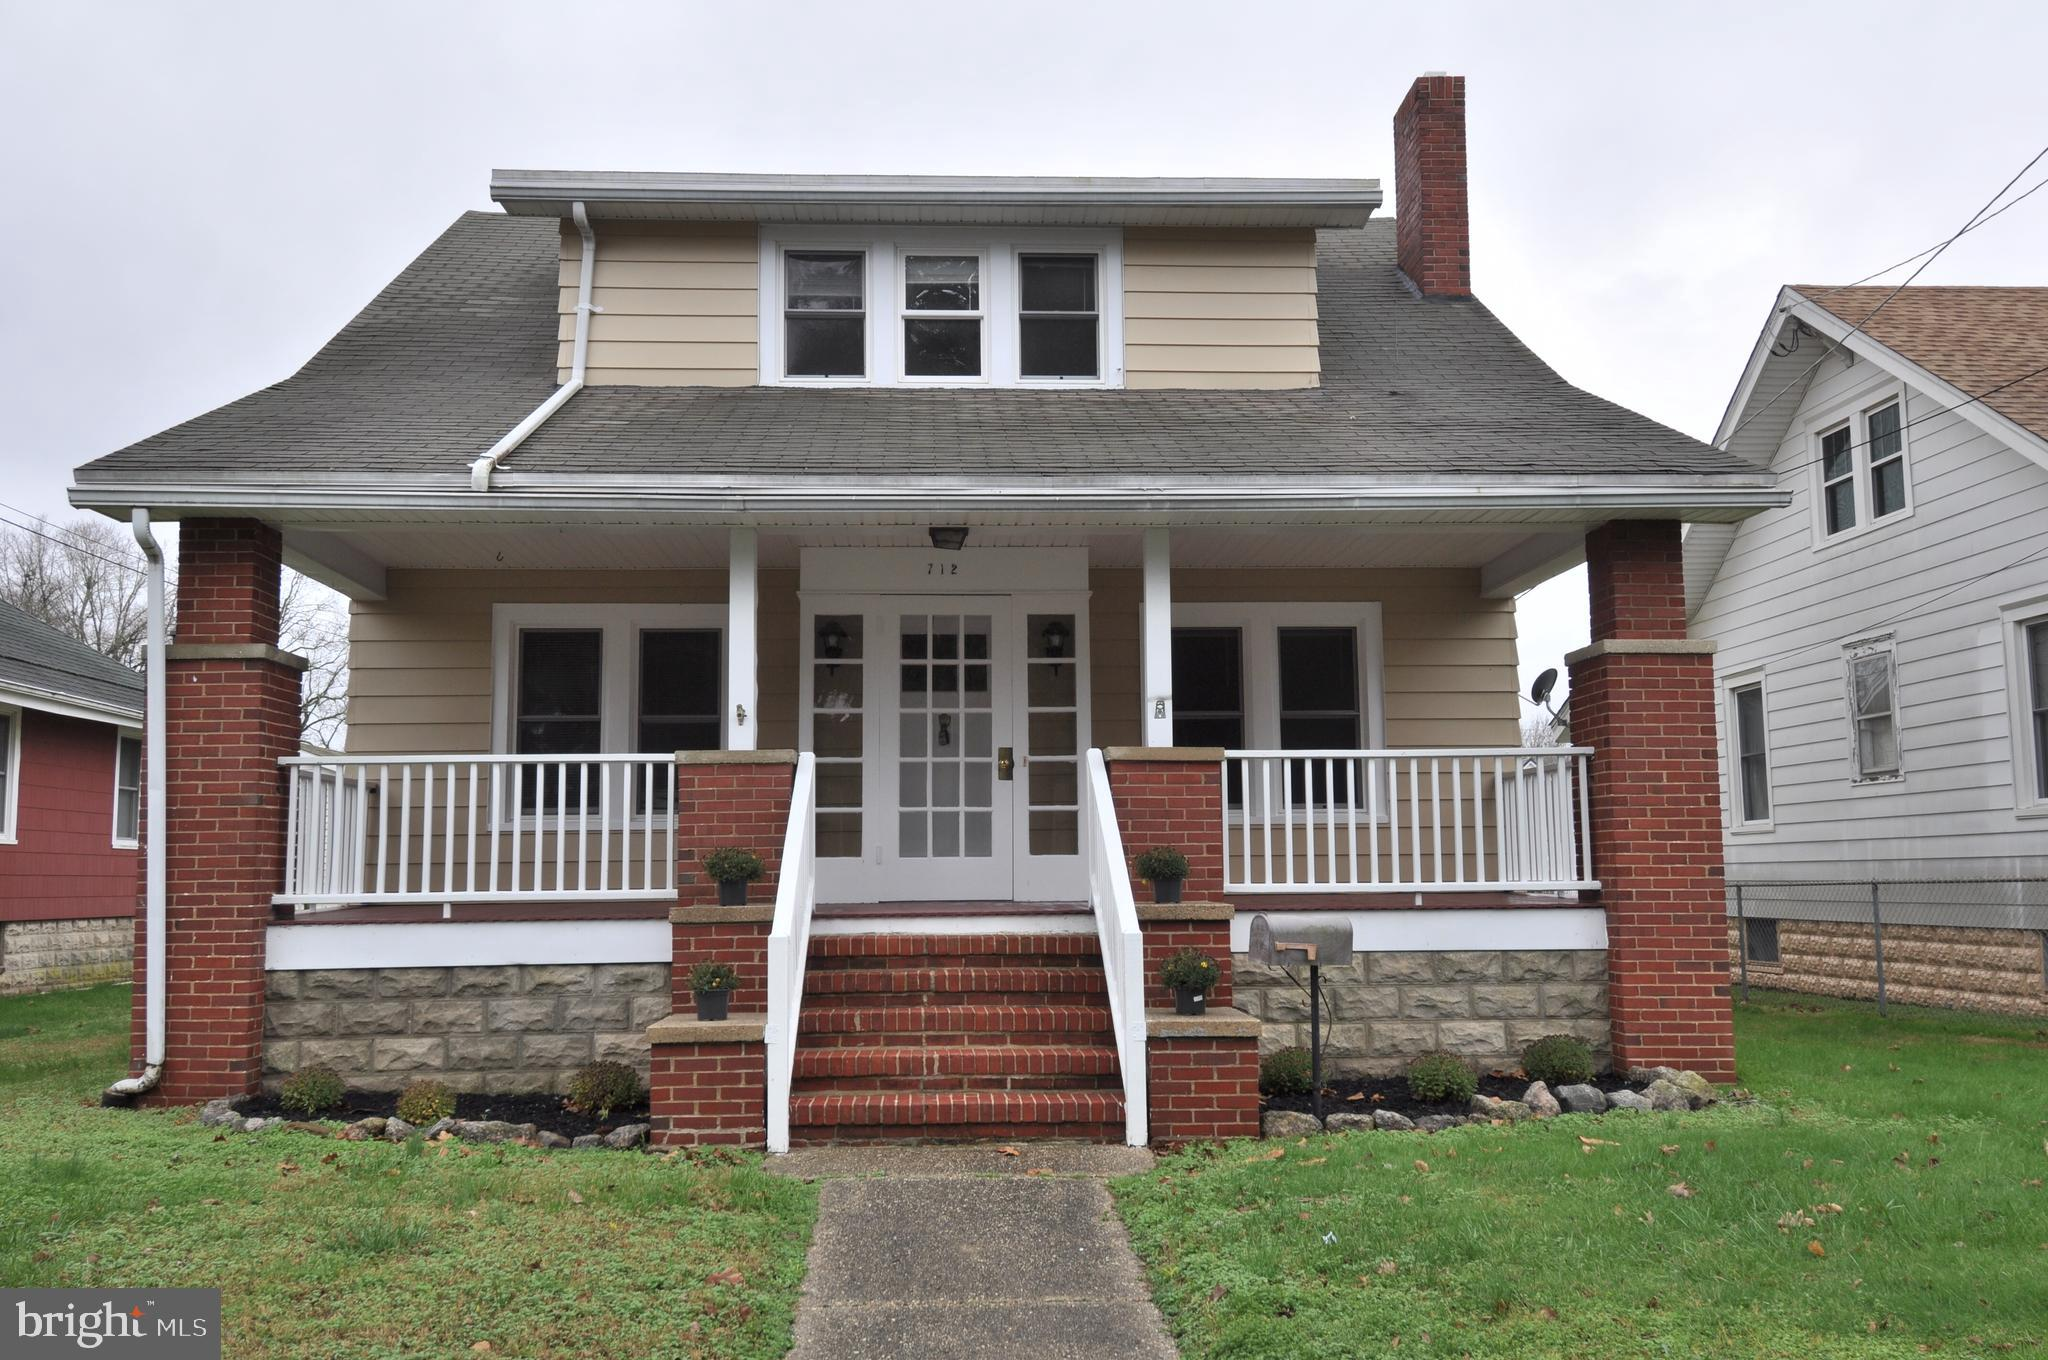 3 FULL BATHS 4 BEDROOM, NEW KITCHEN AND ALL NEW APPLIANCES. READY TO MOVE IN. QUIET WELL ESTABLISHED